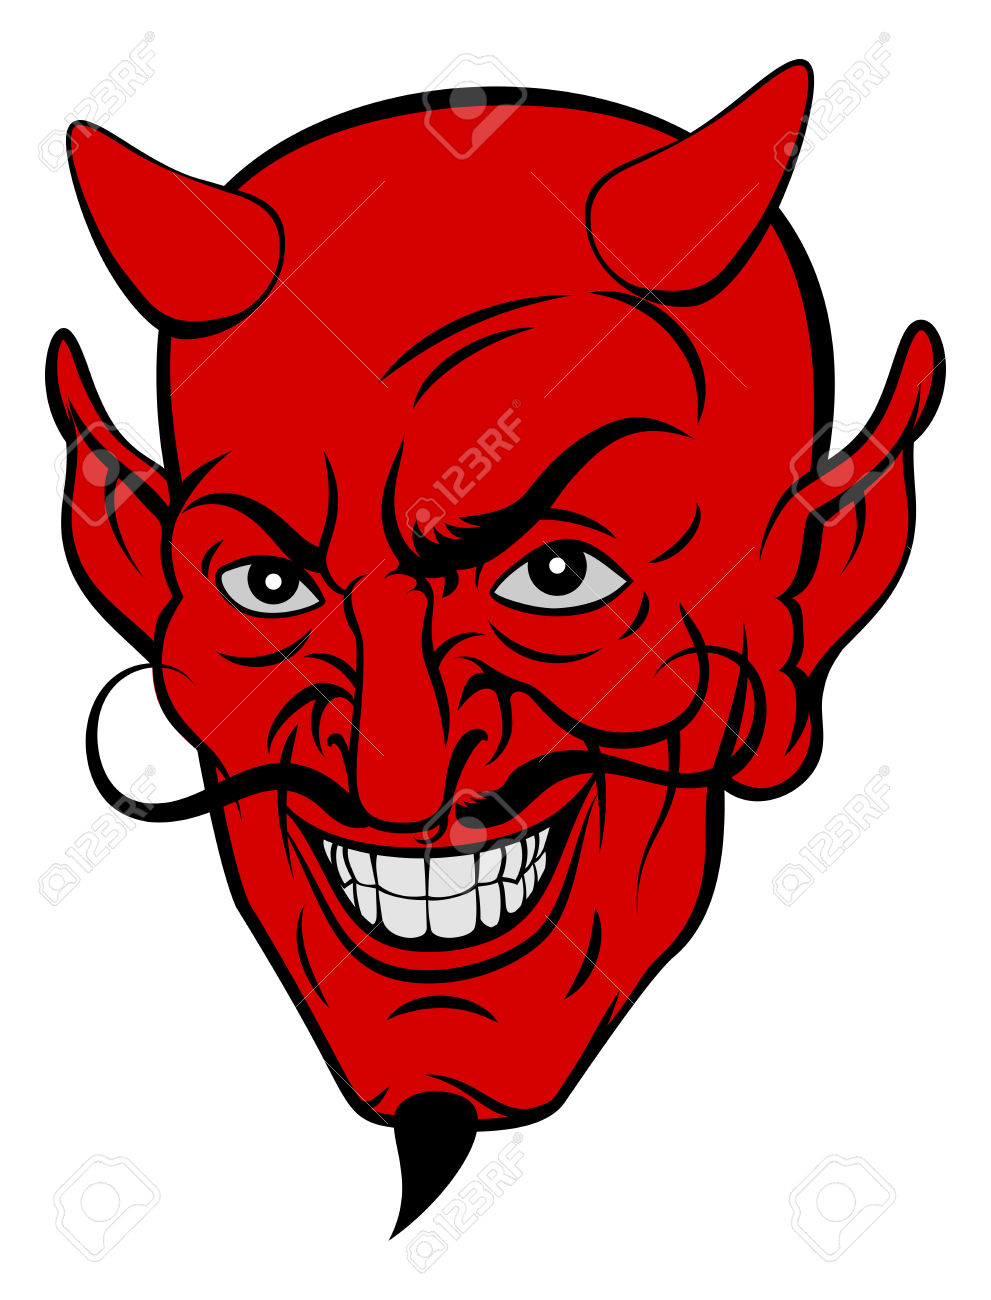 Devil Beard Stock Photos Images. Royalty Free Devil Beard Images.